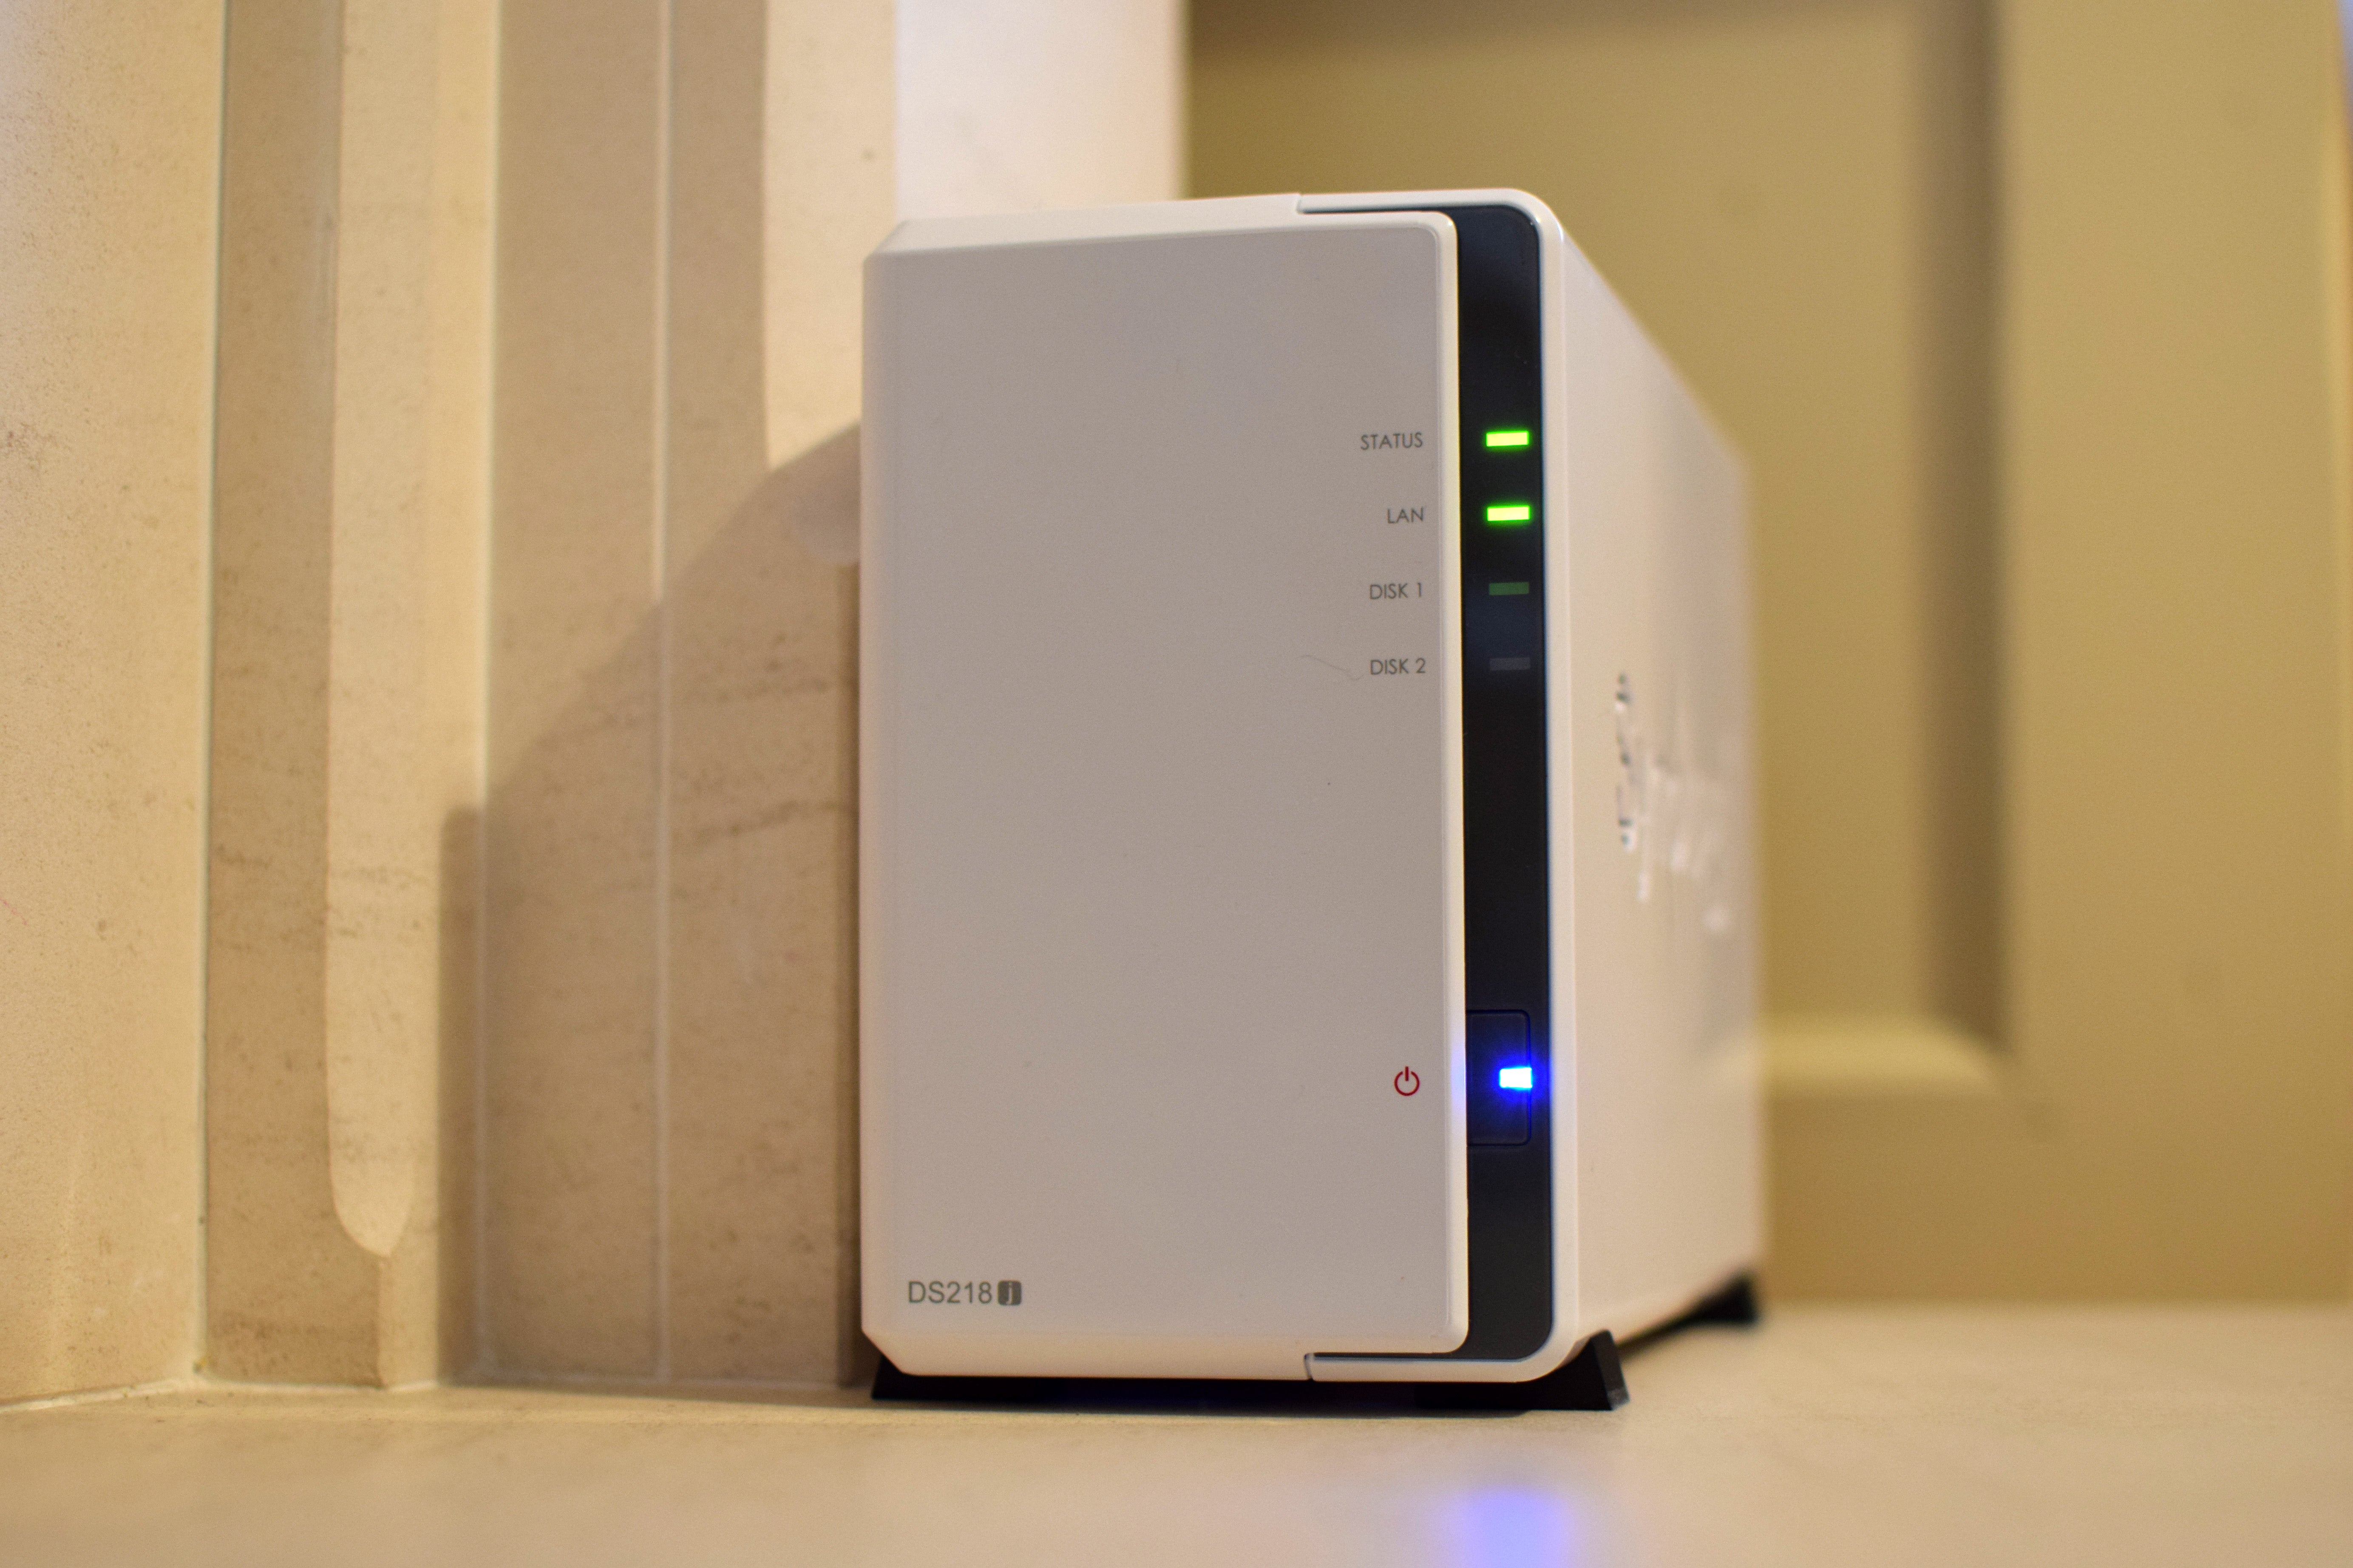 Synology DiskStation DS218j Review | Trusted Reviews